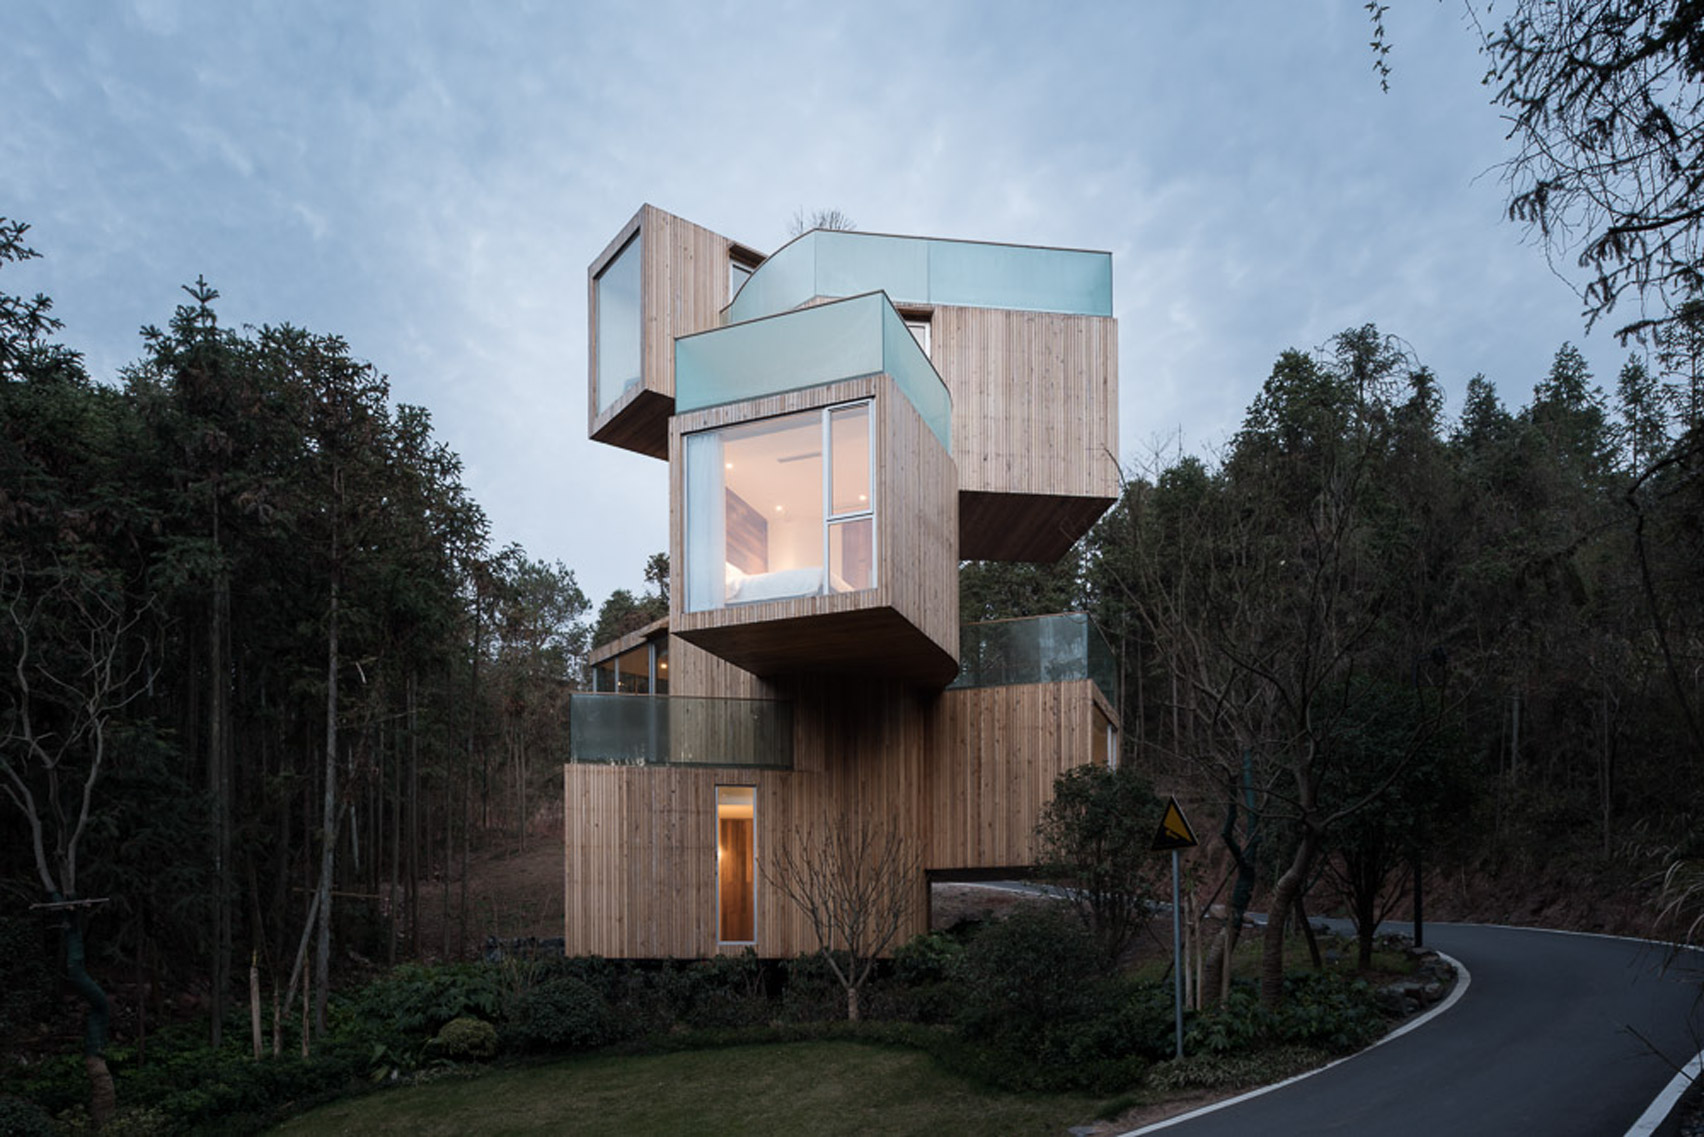 Stacked boxes form Bengo Studio's towering Tree House hotel in rural China